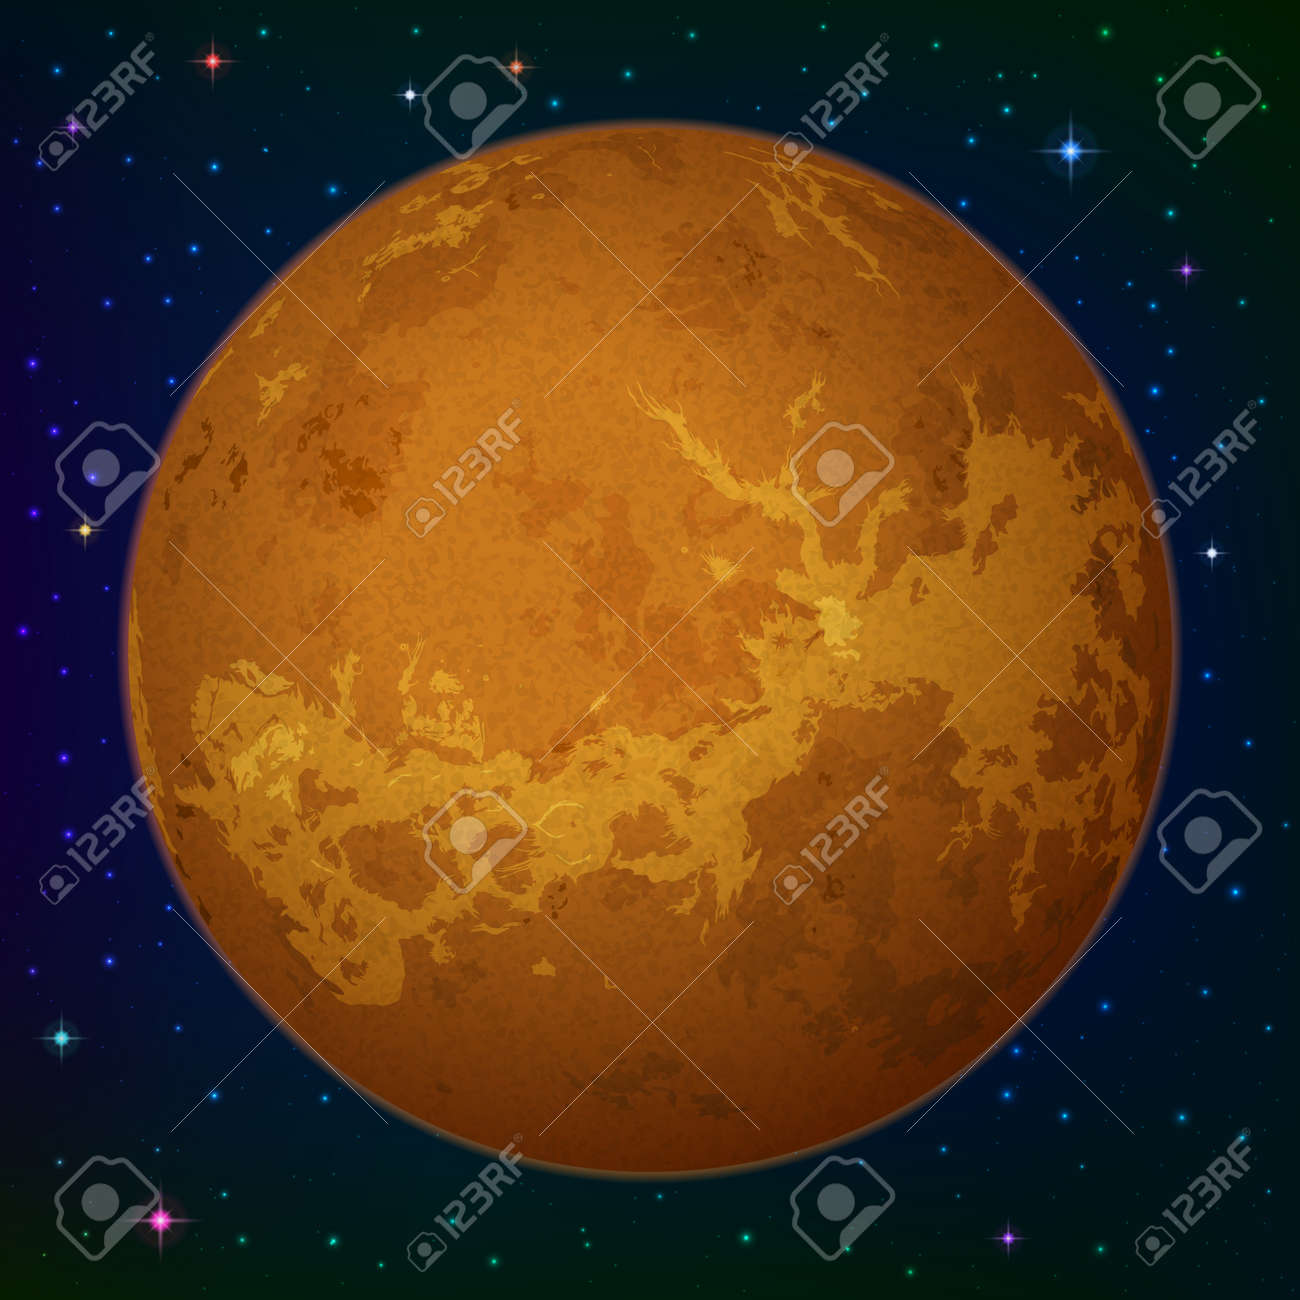 Space background realistic planet venus and stars royalty free space background realistic planet venus and stars stock vector 20551193 voltagebd Choice Image